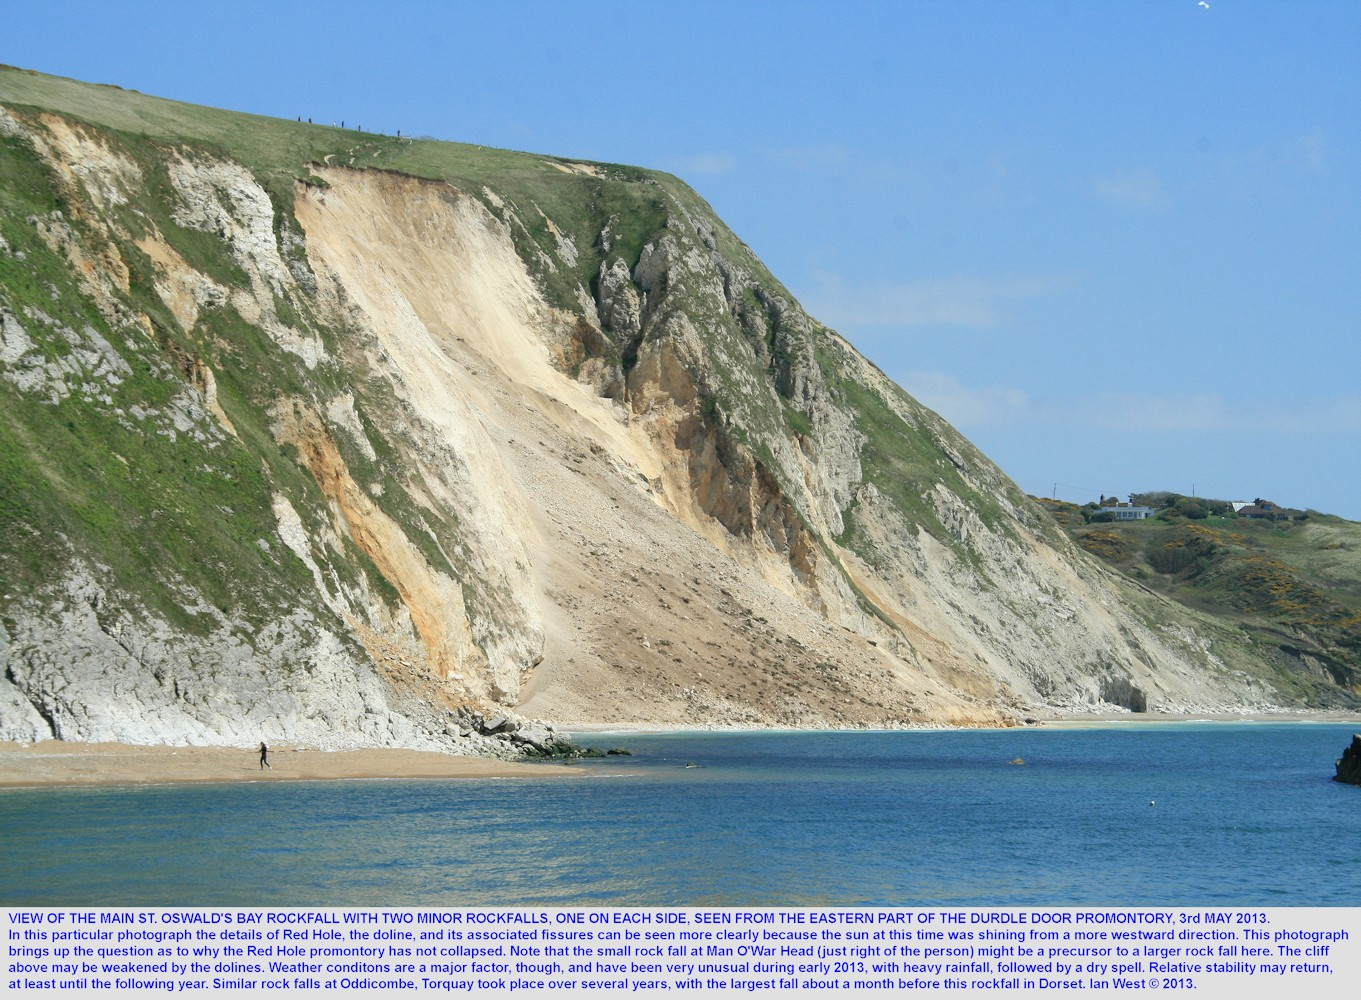 The Chalk rockfall at St. Oswald's Bay, seen from the eastern part of the Durdle Door promontory, near Lulworth Cove, Dorset, 3rd May 2013